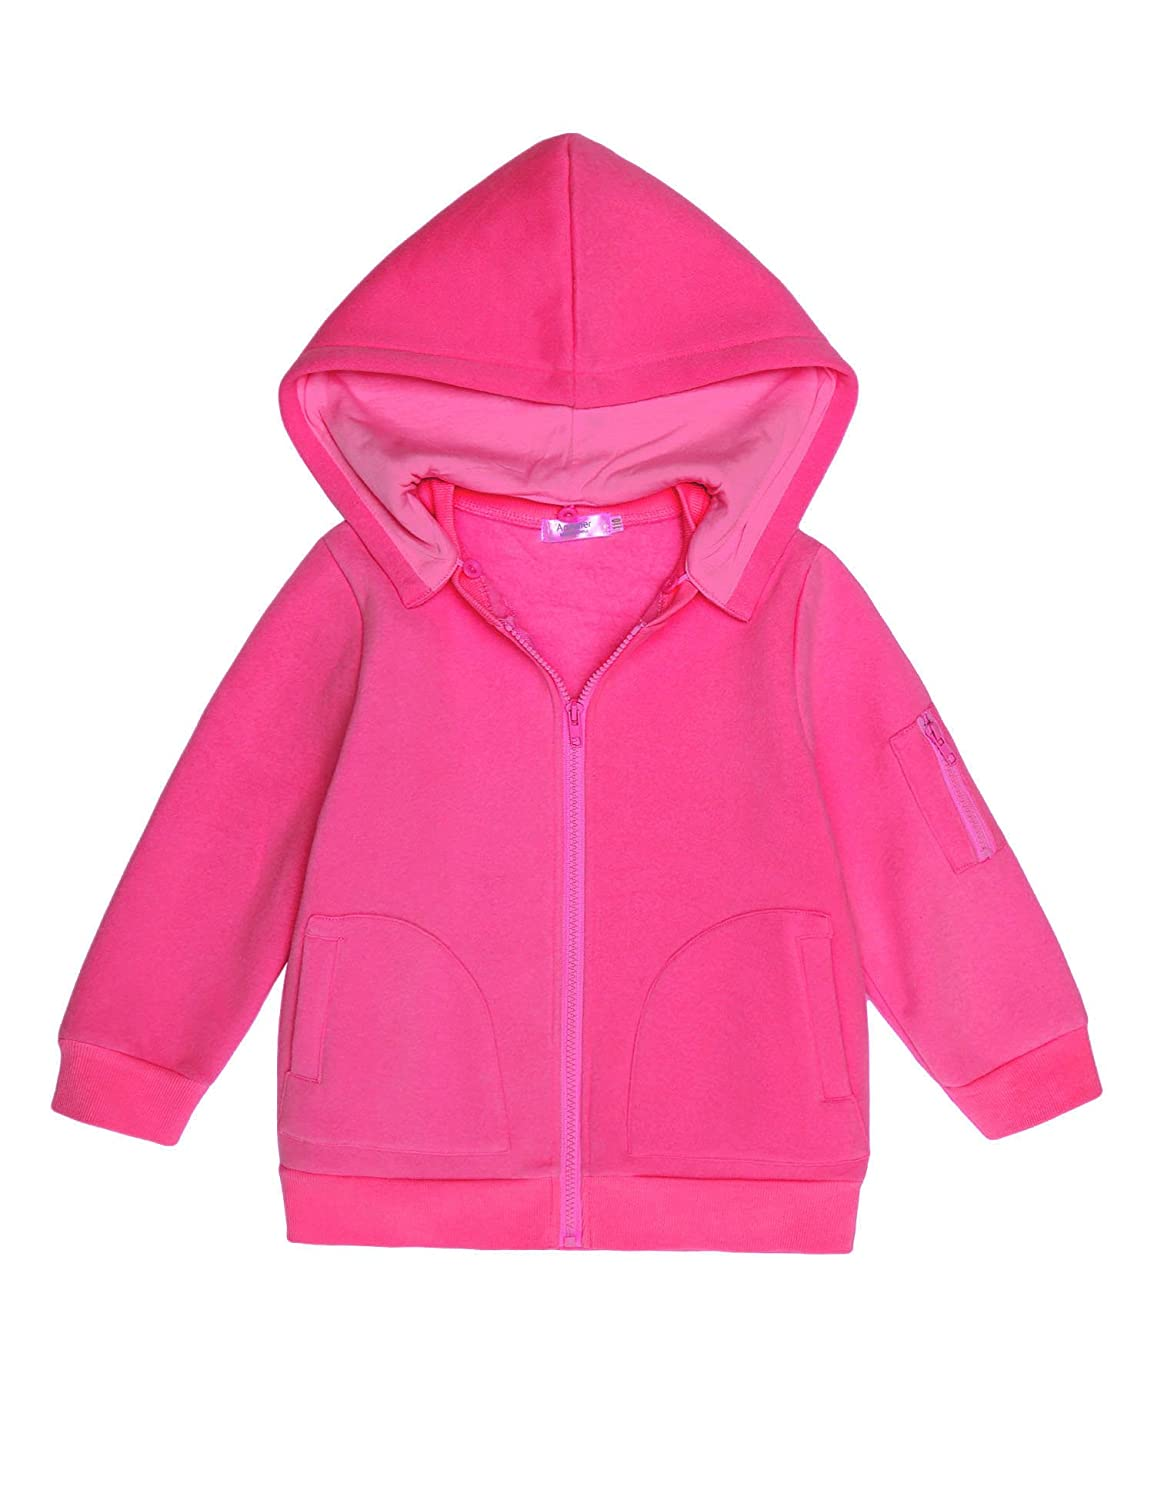 Ashiner Long Sleeve Zip-Up Hoodie Jacket for girls ASS005239